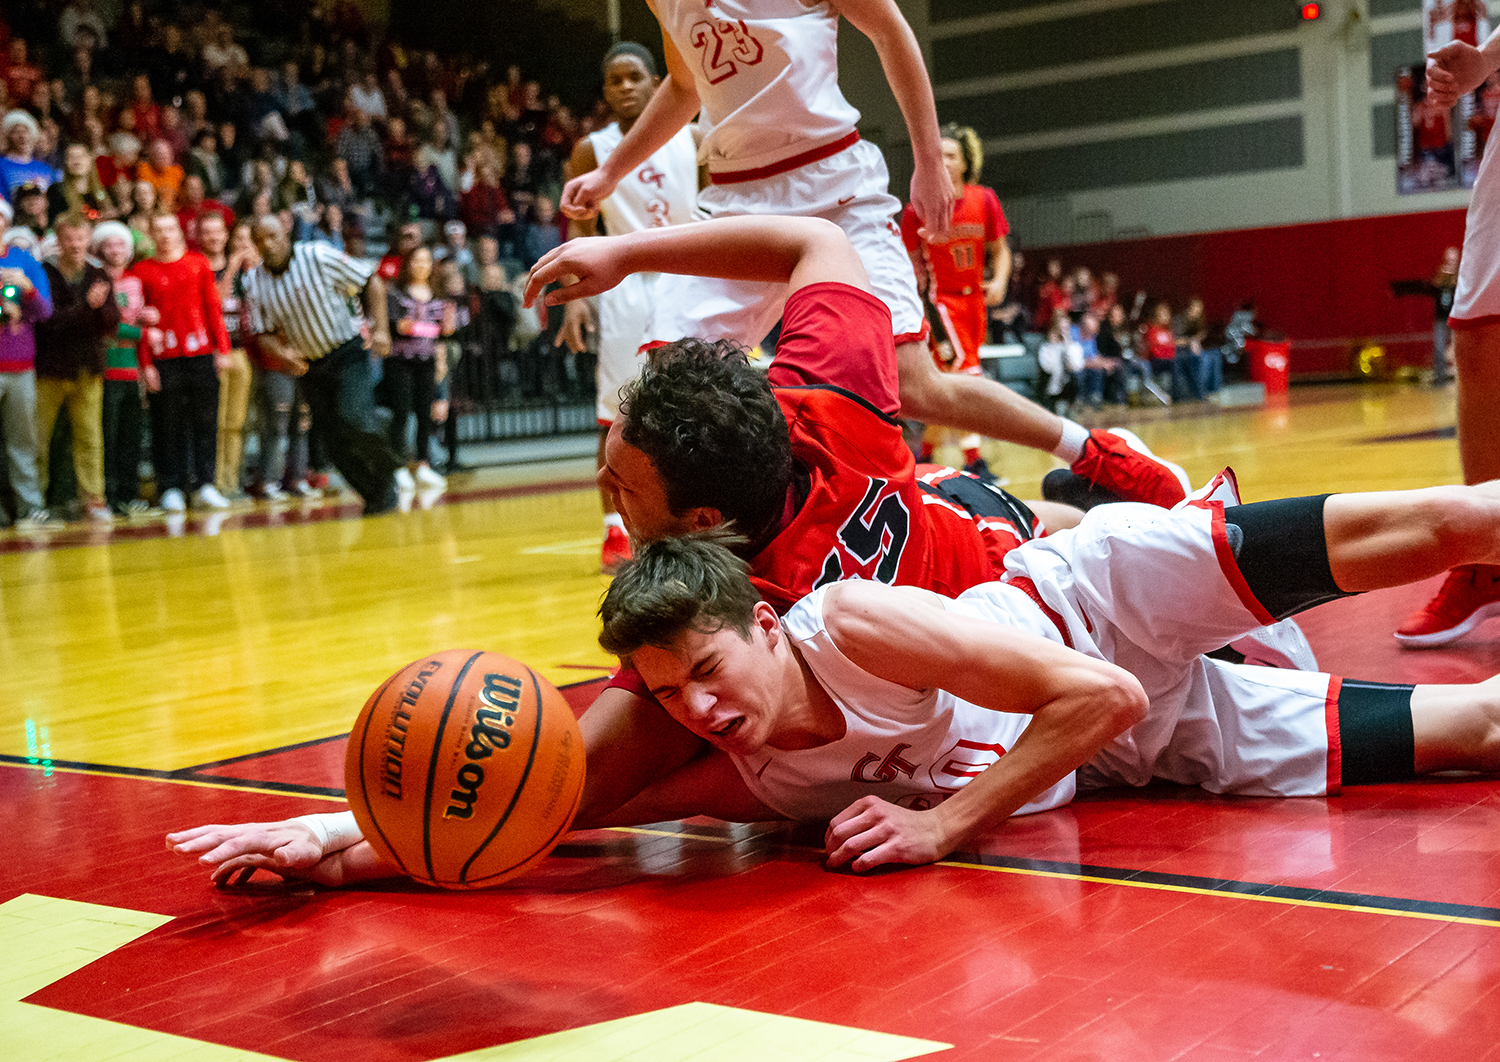 Glenwood's Bradyn Kilby (20) hits the court going after possession of the ball against Springfield's Nate Borders (55) in the first half at Glenwood High School, Friday, Dec. 14, 2018, in Chatham, Ill. [Justin L. Fowler/The State Journal-Register]